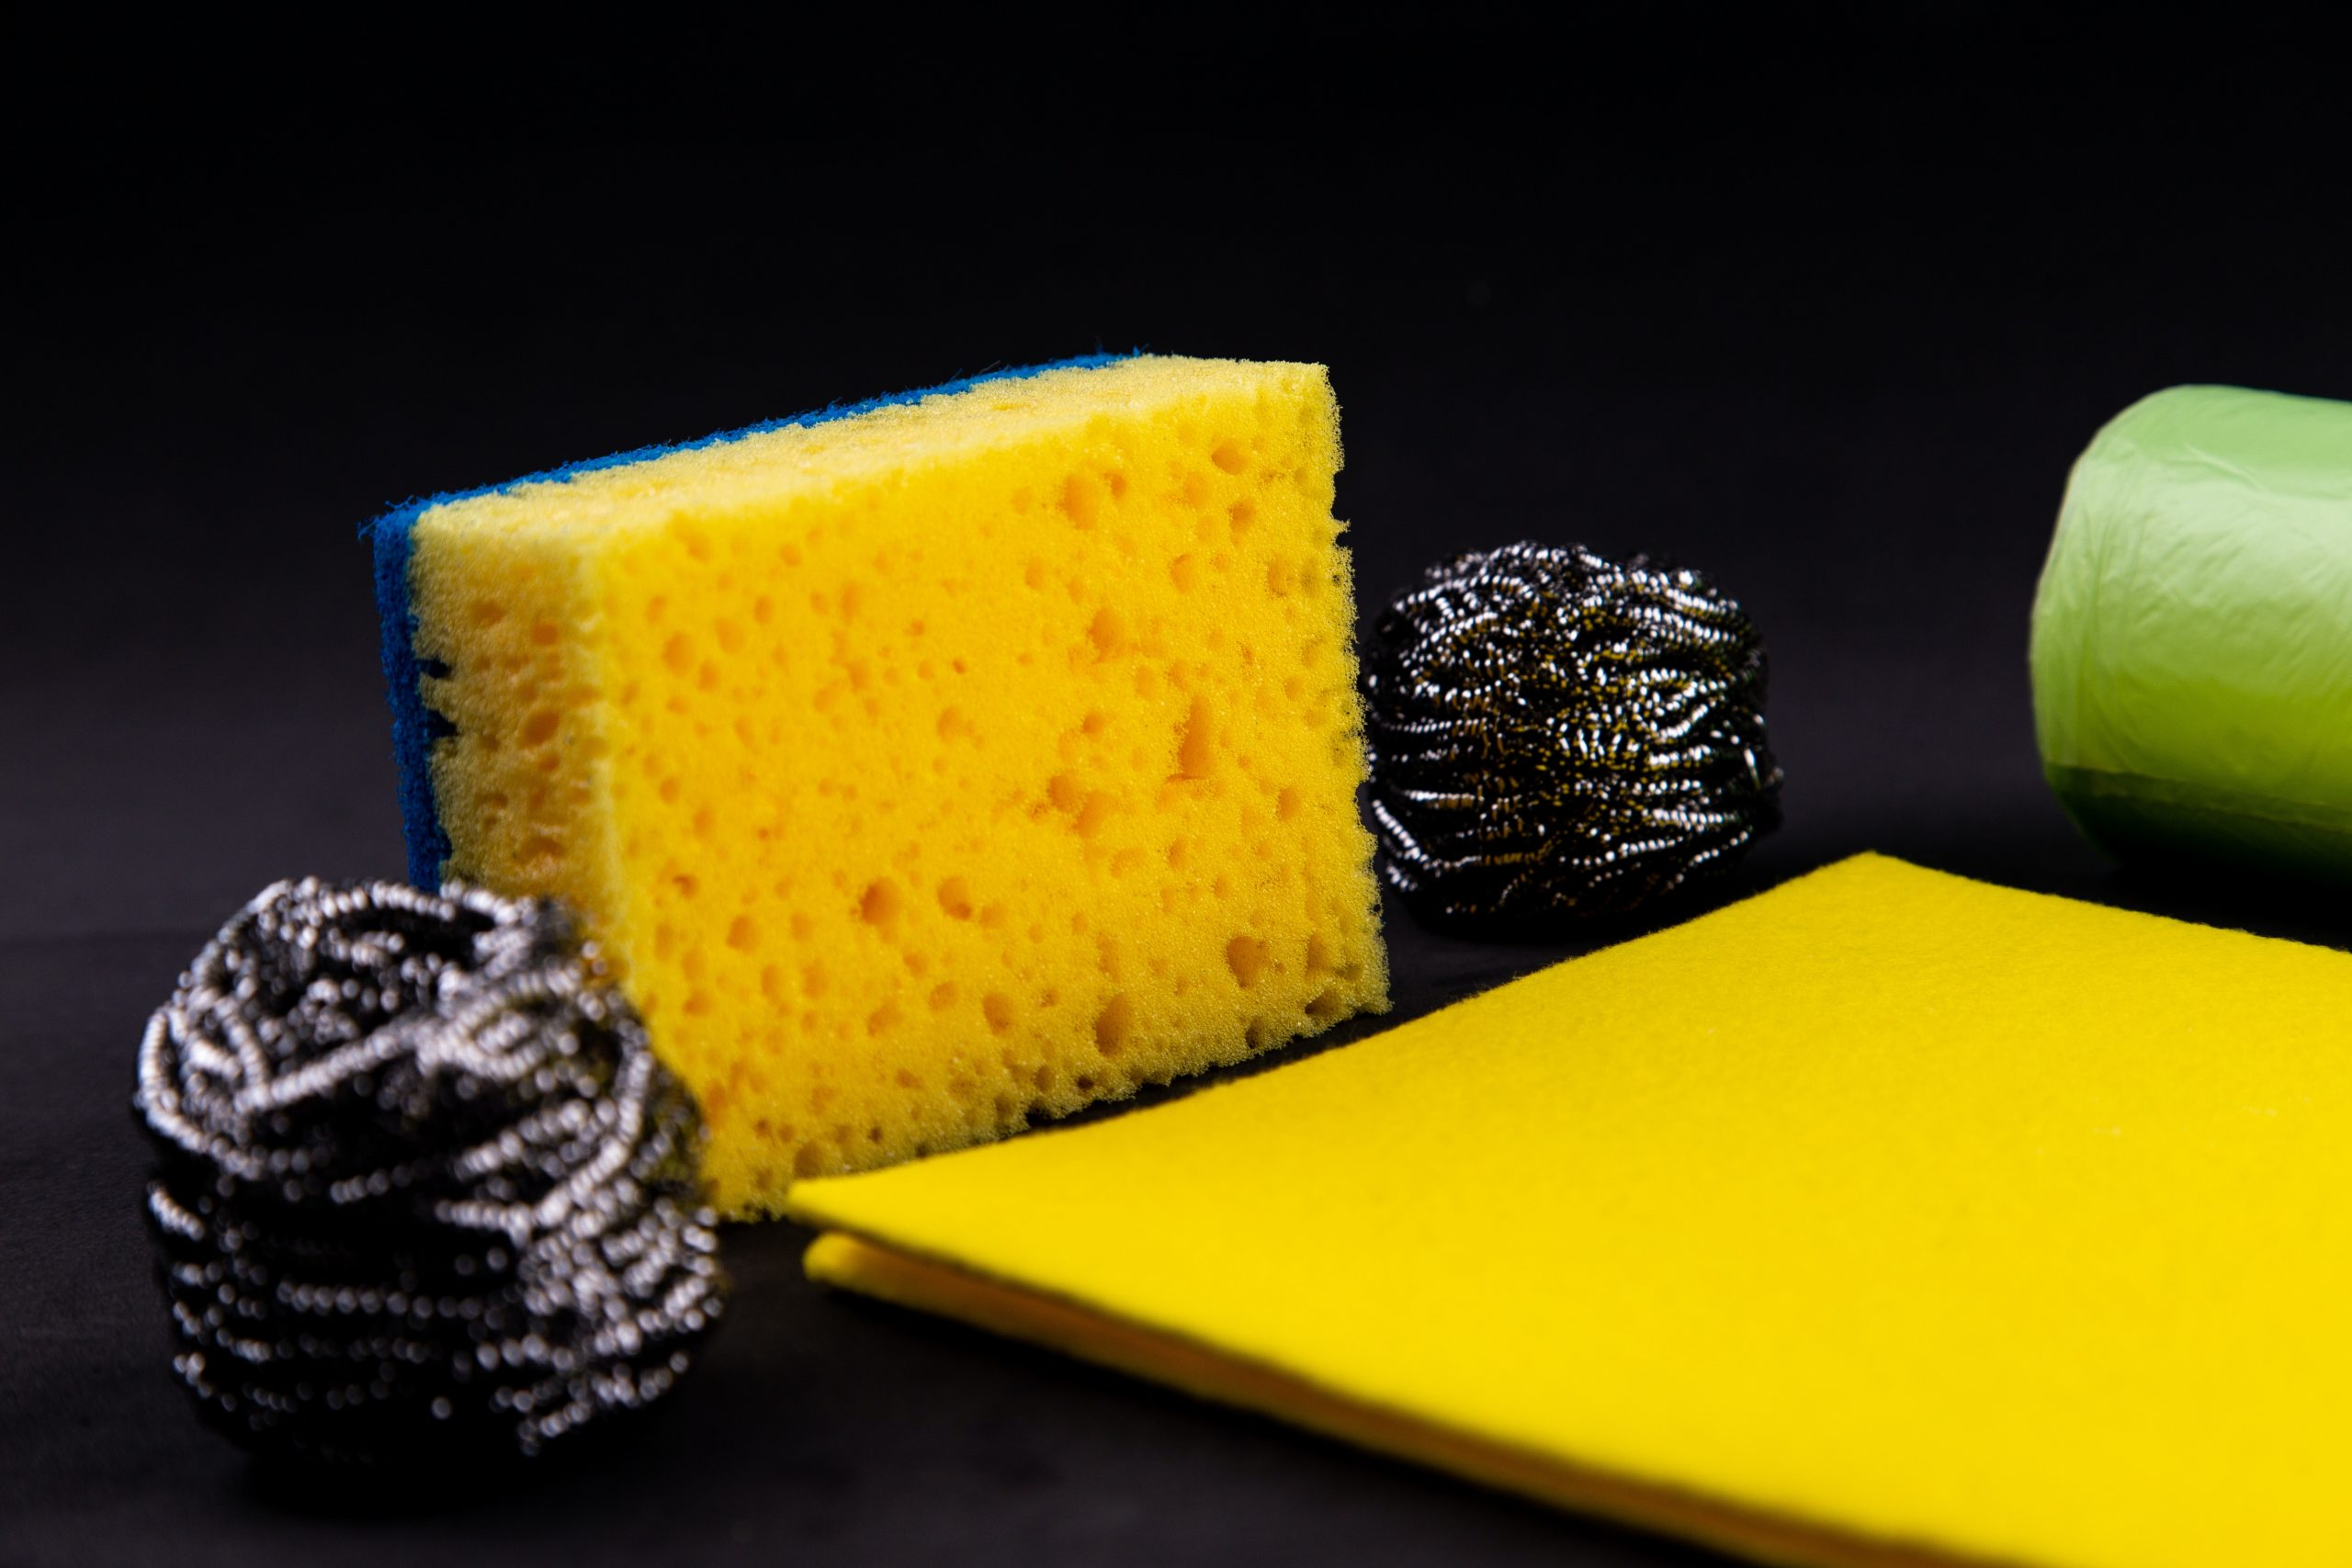 yellow sponge between two steel wools